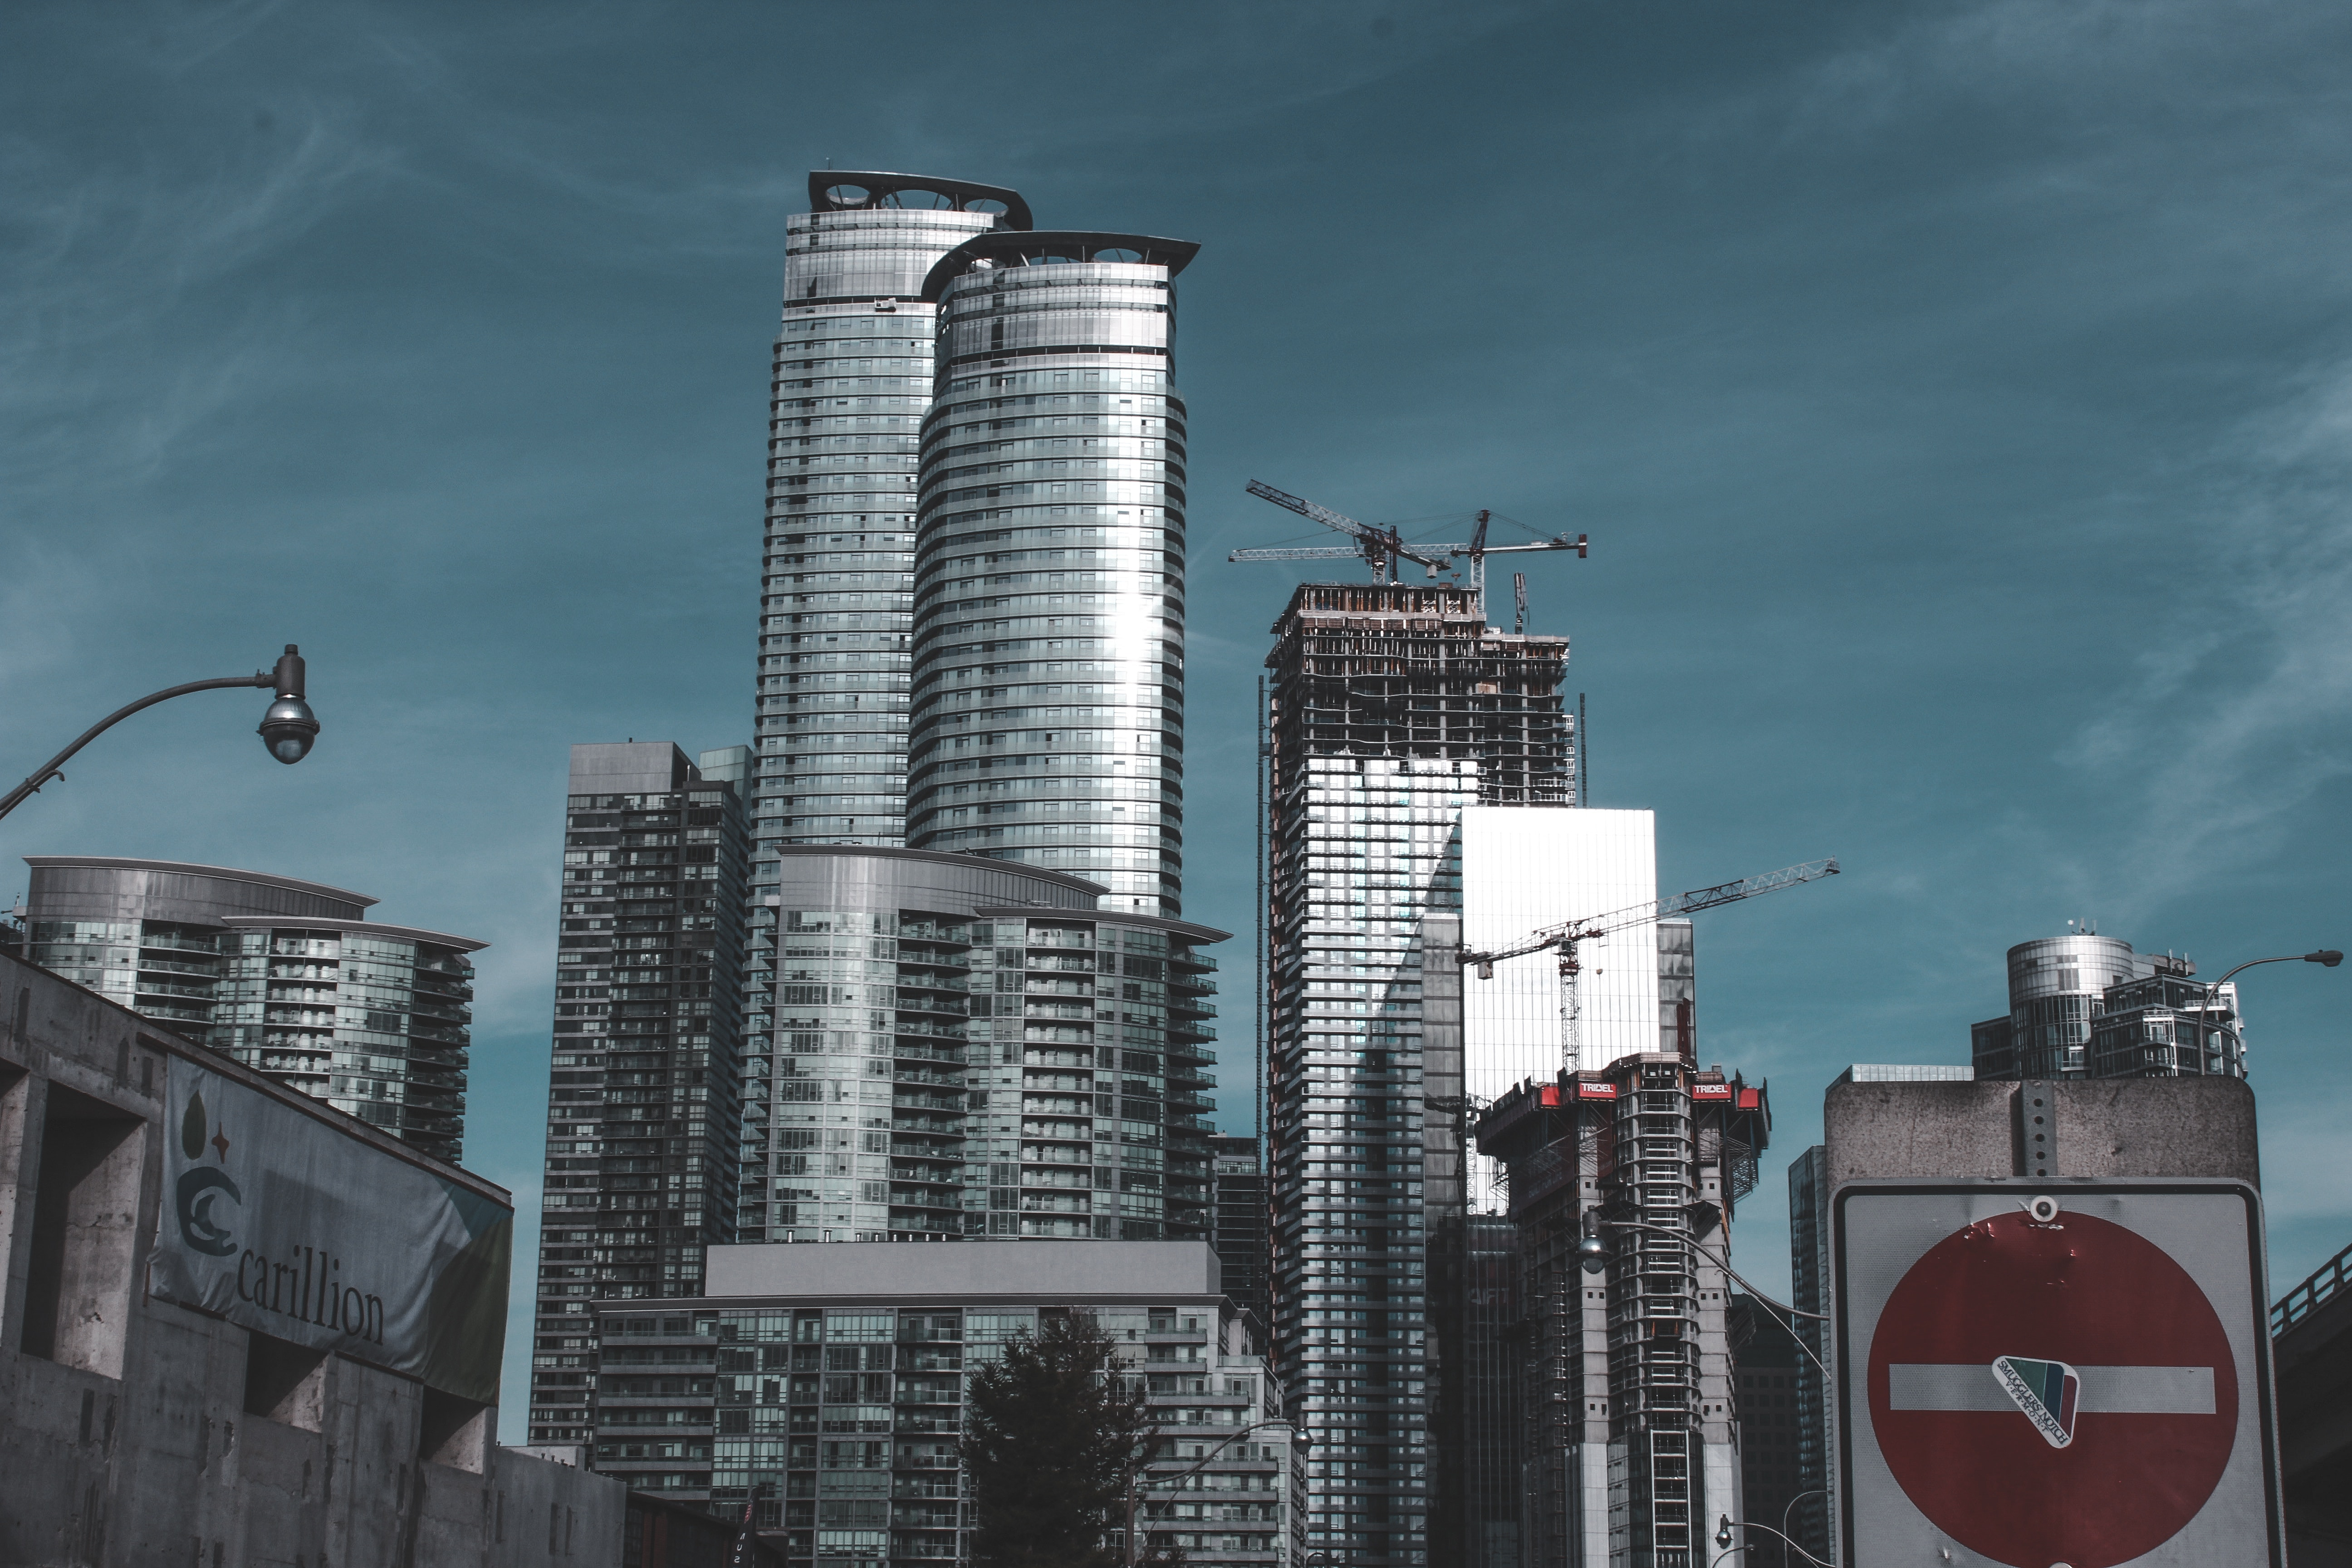 Skyscrapers at daytime photo